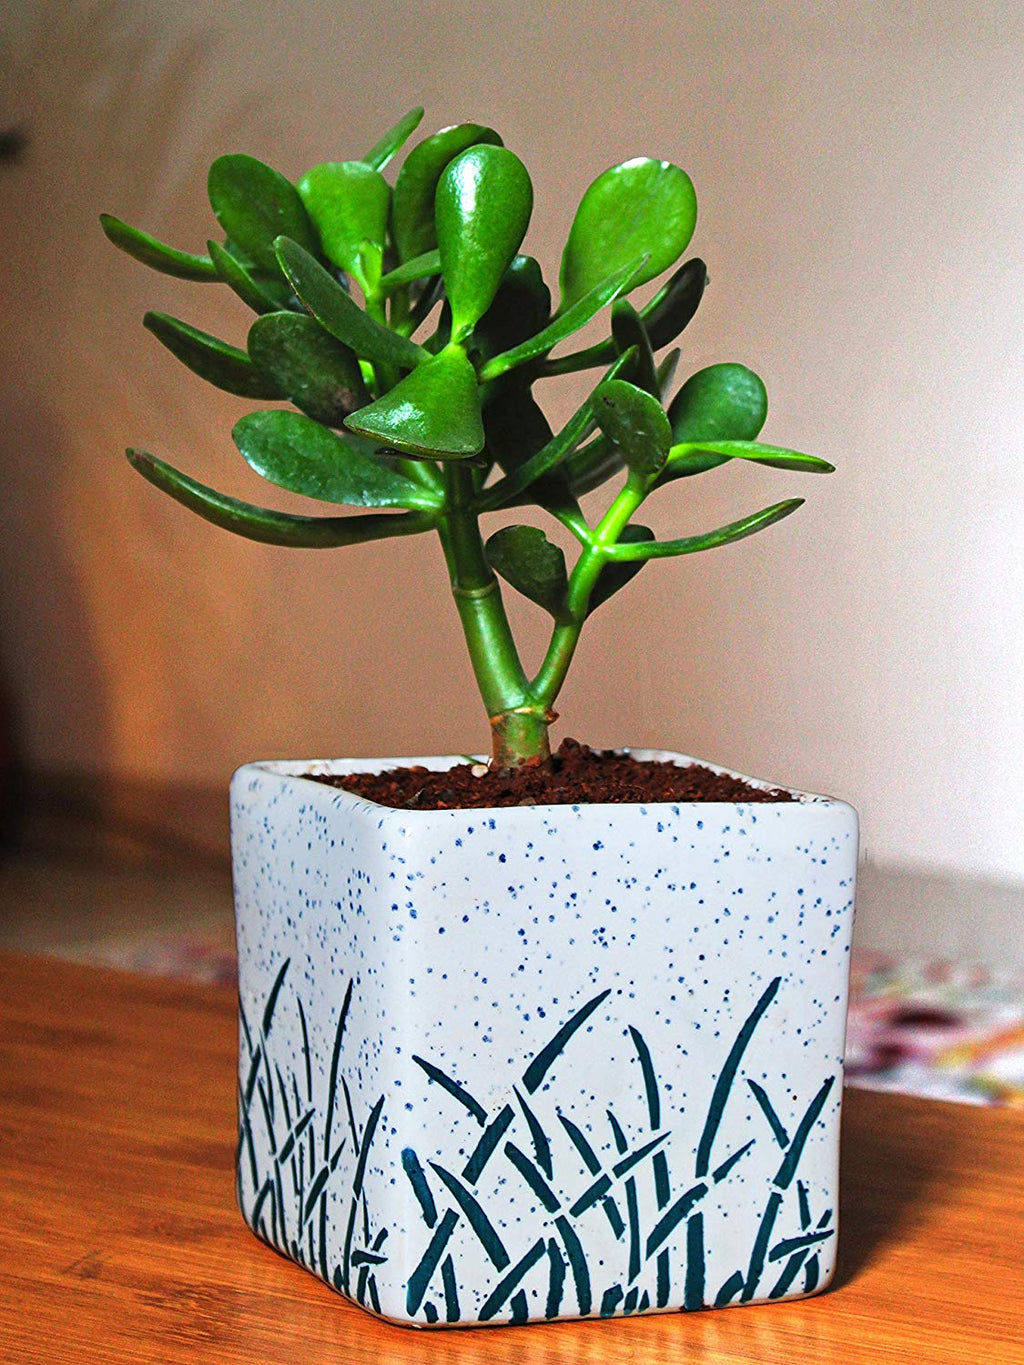 Air Purifying Good Luck Live Natural Plants in Exquisite Ceramic Pots. Best Indoor Plants online in India. Best green gifts for corporate or any occasions. Love plants as gifts. Crassula Jade quality houseplants shipped all over India.